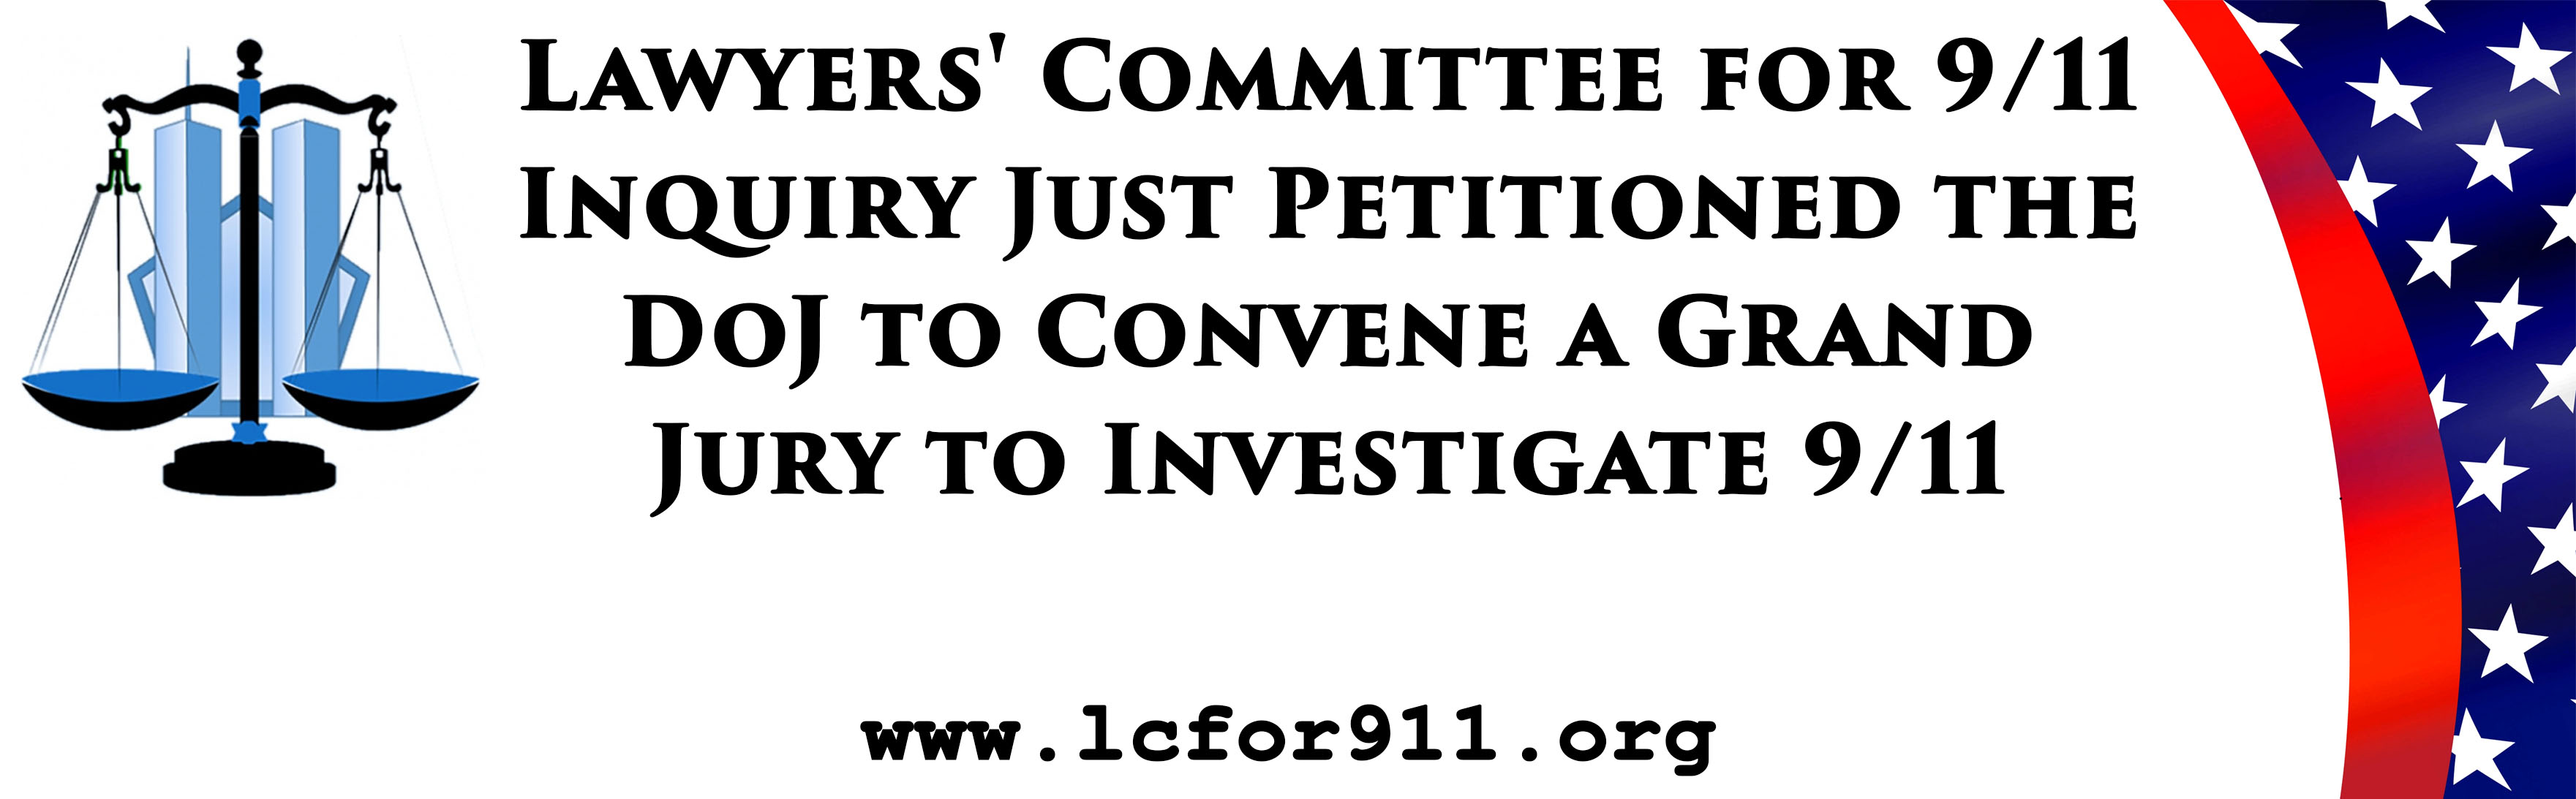 Lawyers' Committee for 9/11 Inquiry Just Petitioned the DoJ to Convene a Grand Jury to Investigate 9/11